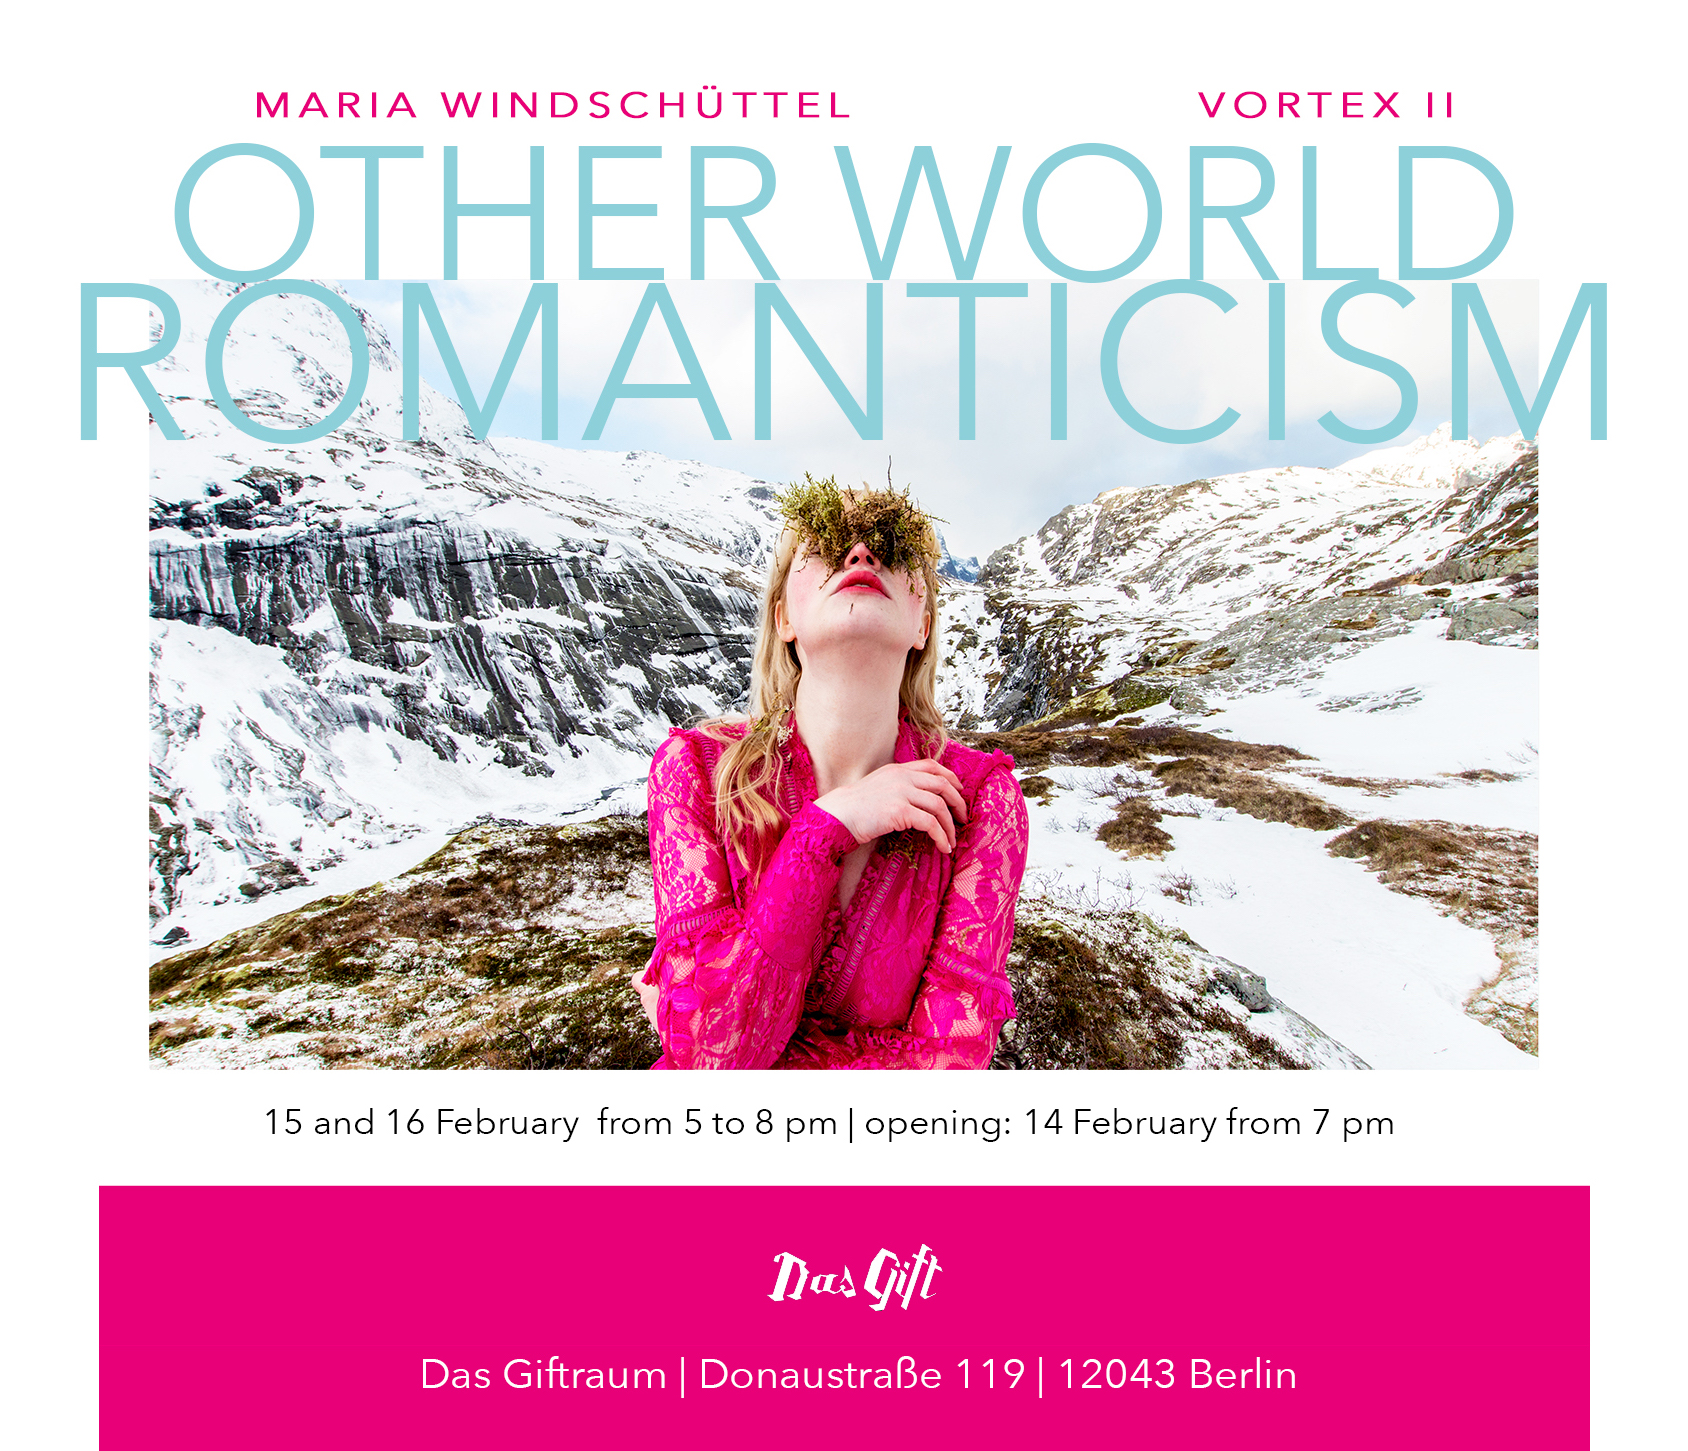 Other World Romanticism Flyer Maria Windschüttel